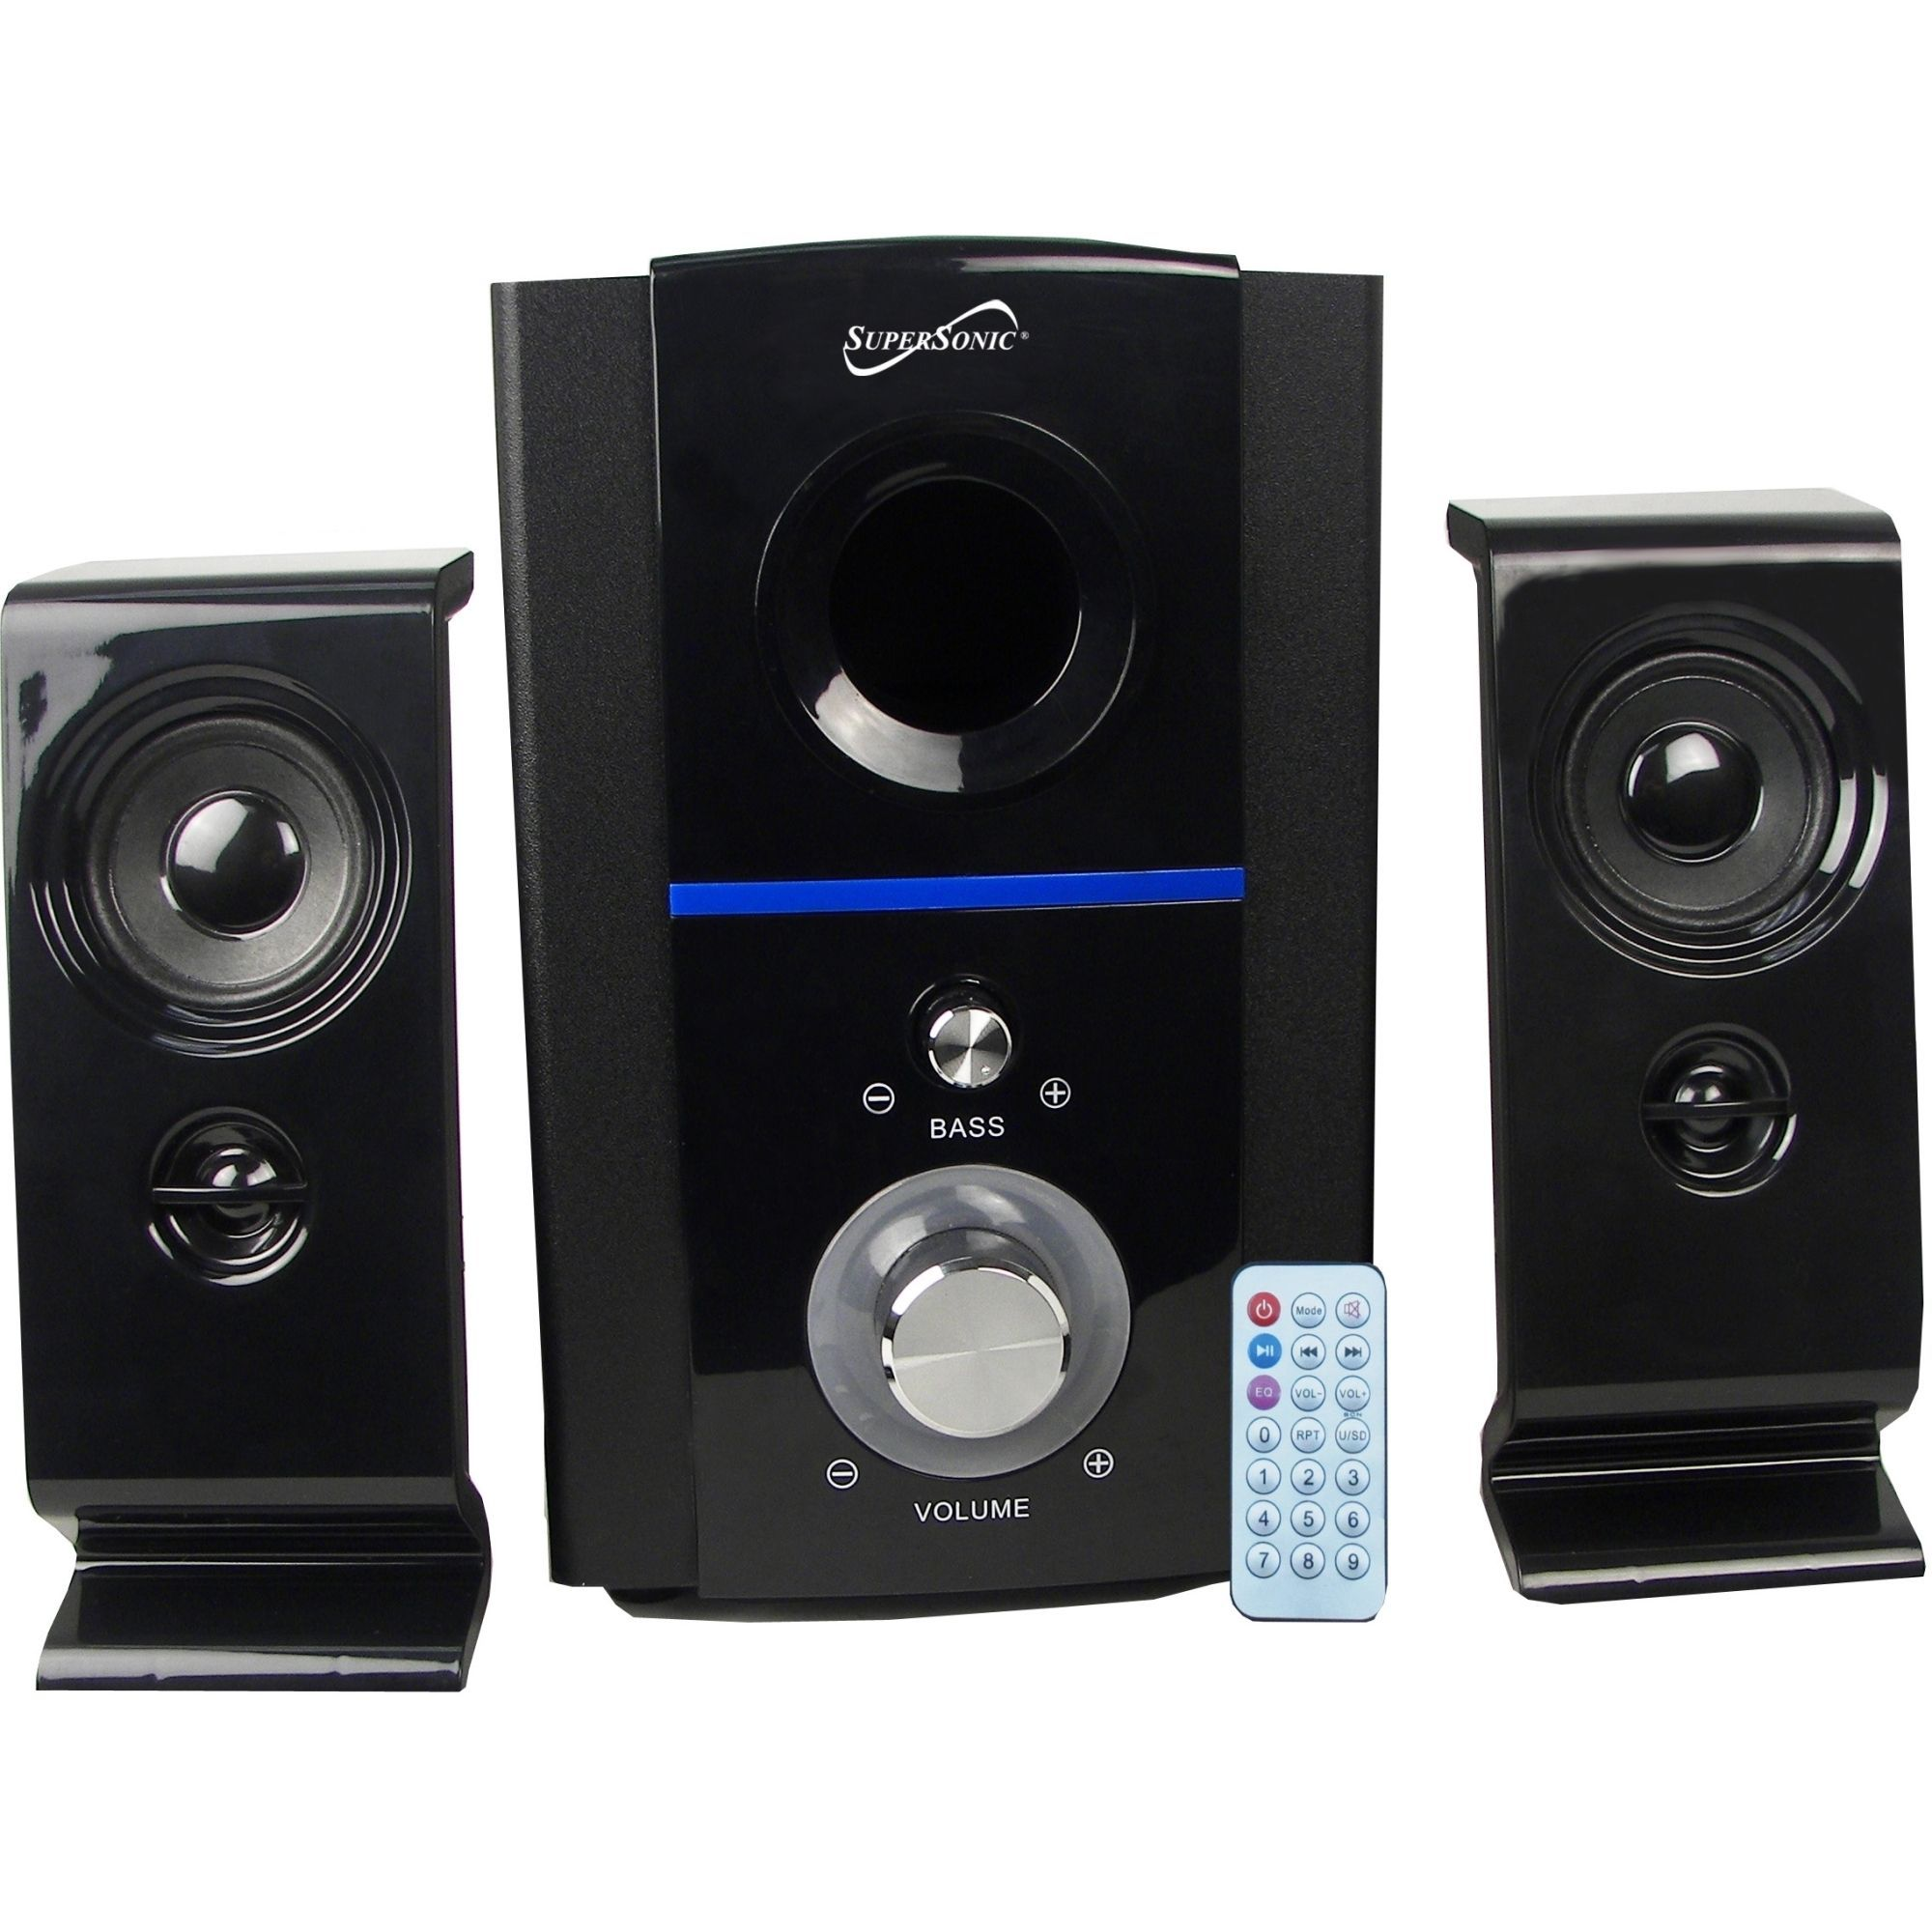 Bose Soundtouch 520 Home Cinema In Ls26 Leeds For 400 00 For Sale Shpock